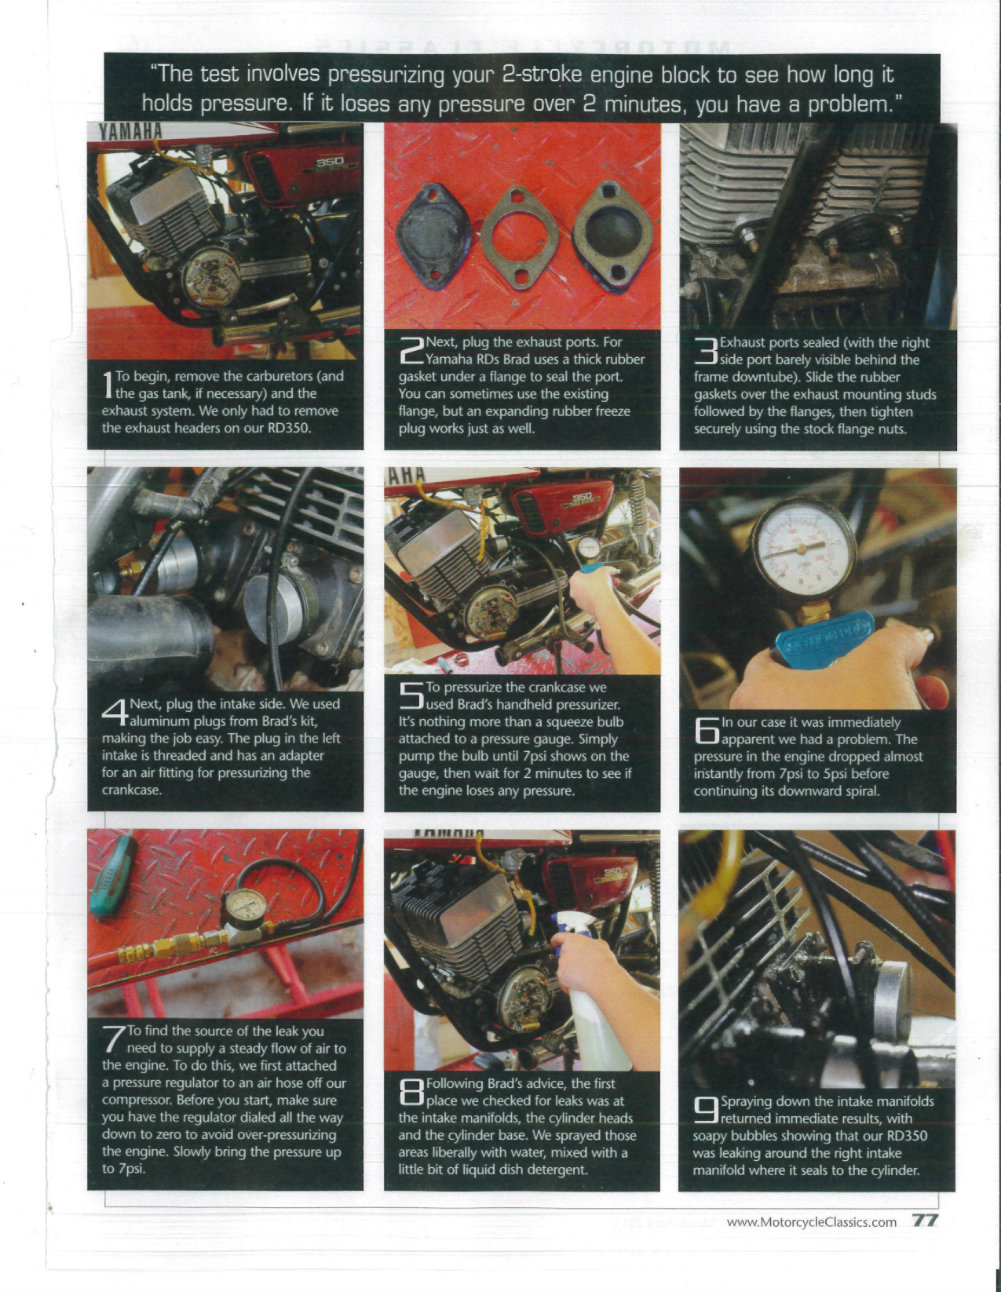 rd350-pressure-check-page-002.jpg